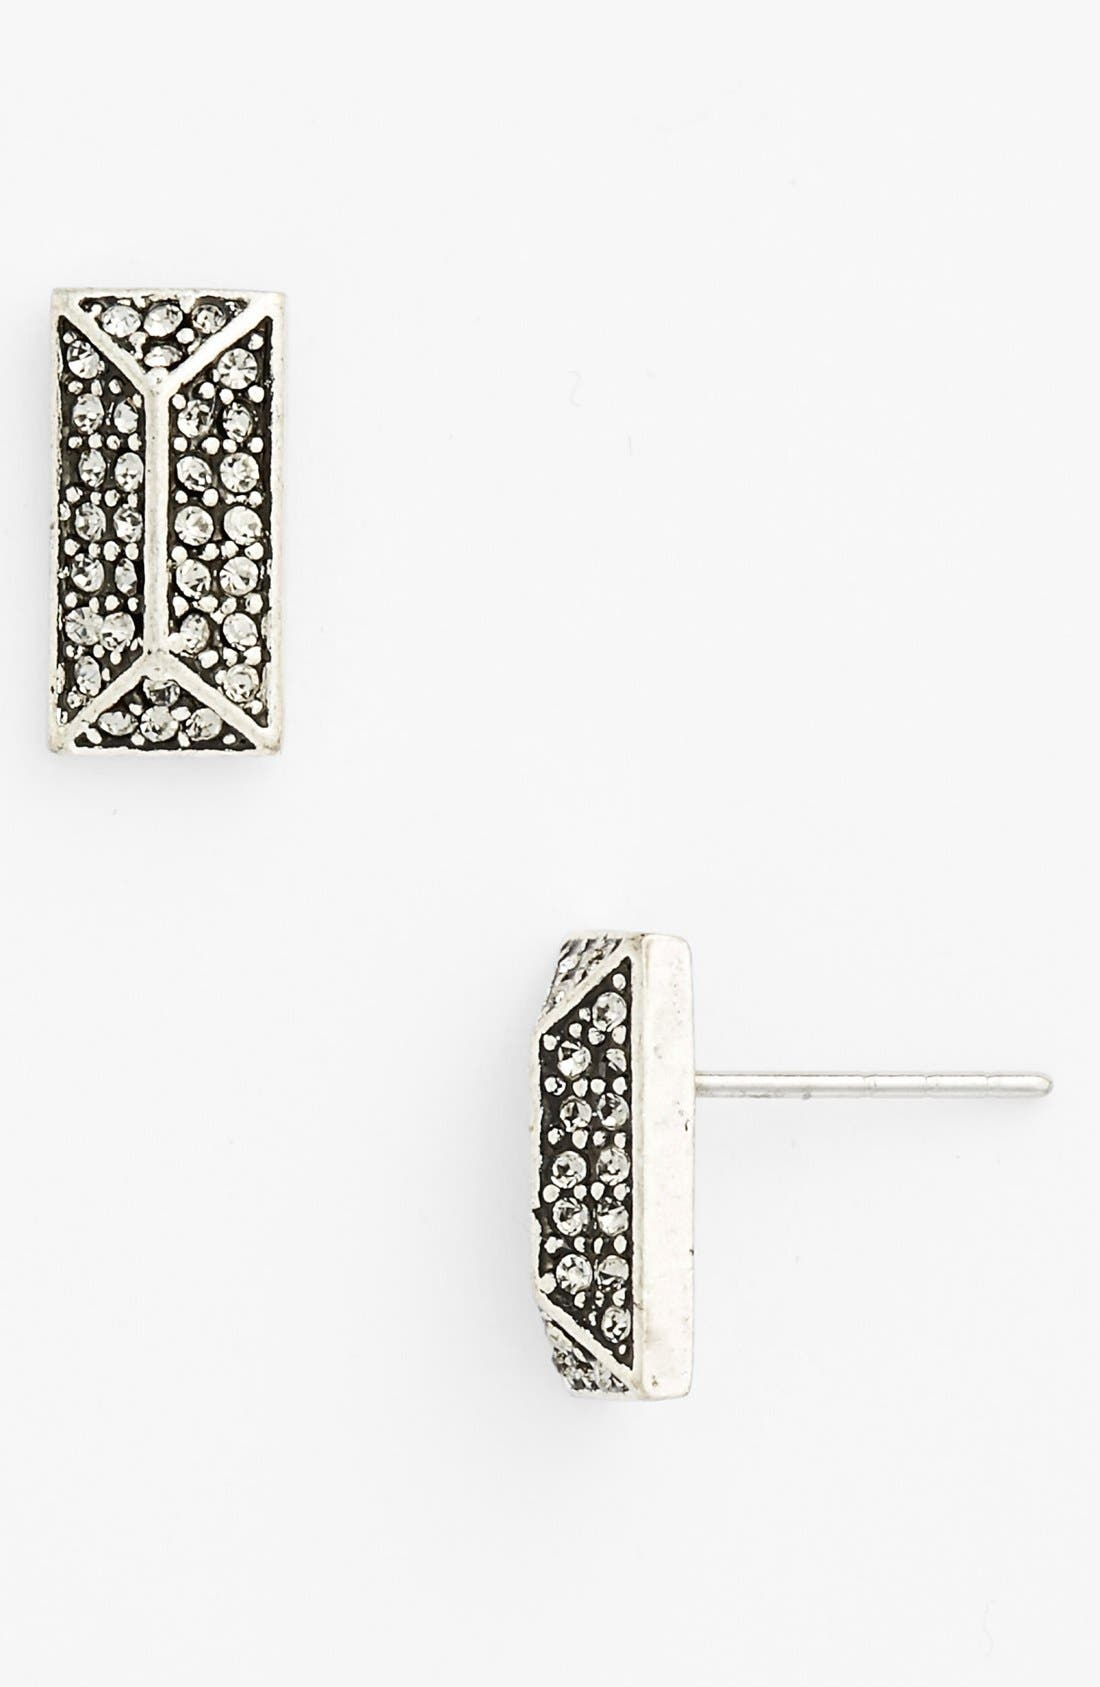 Alternate Image 1 Selected - Rebecca Minkoff 'Jewel Box' Brick Spike Stud Earrings